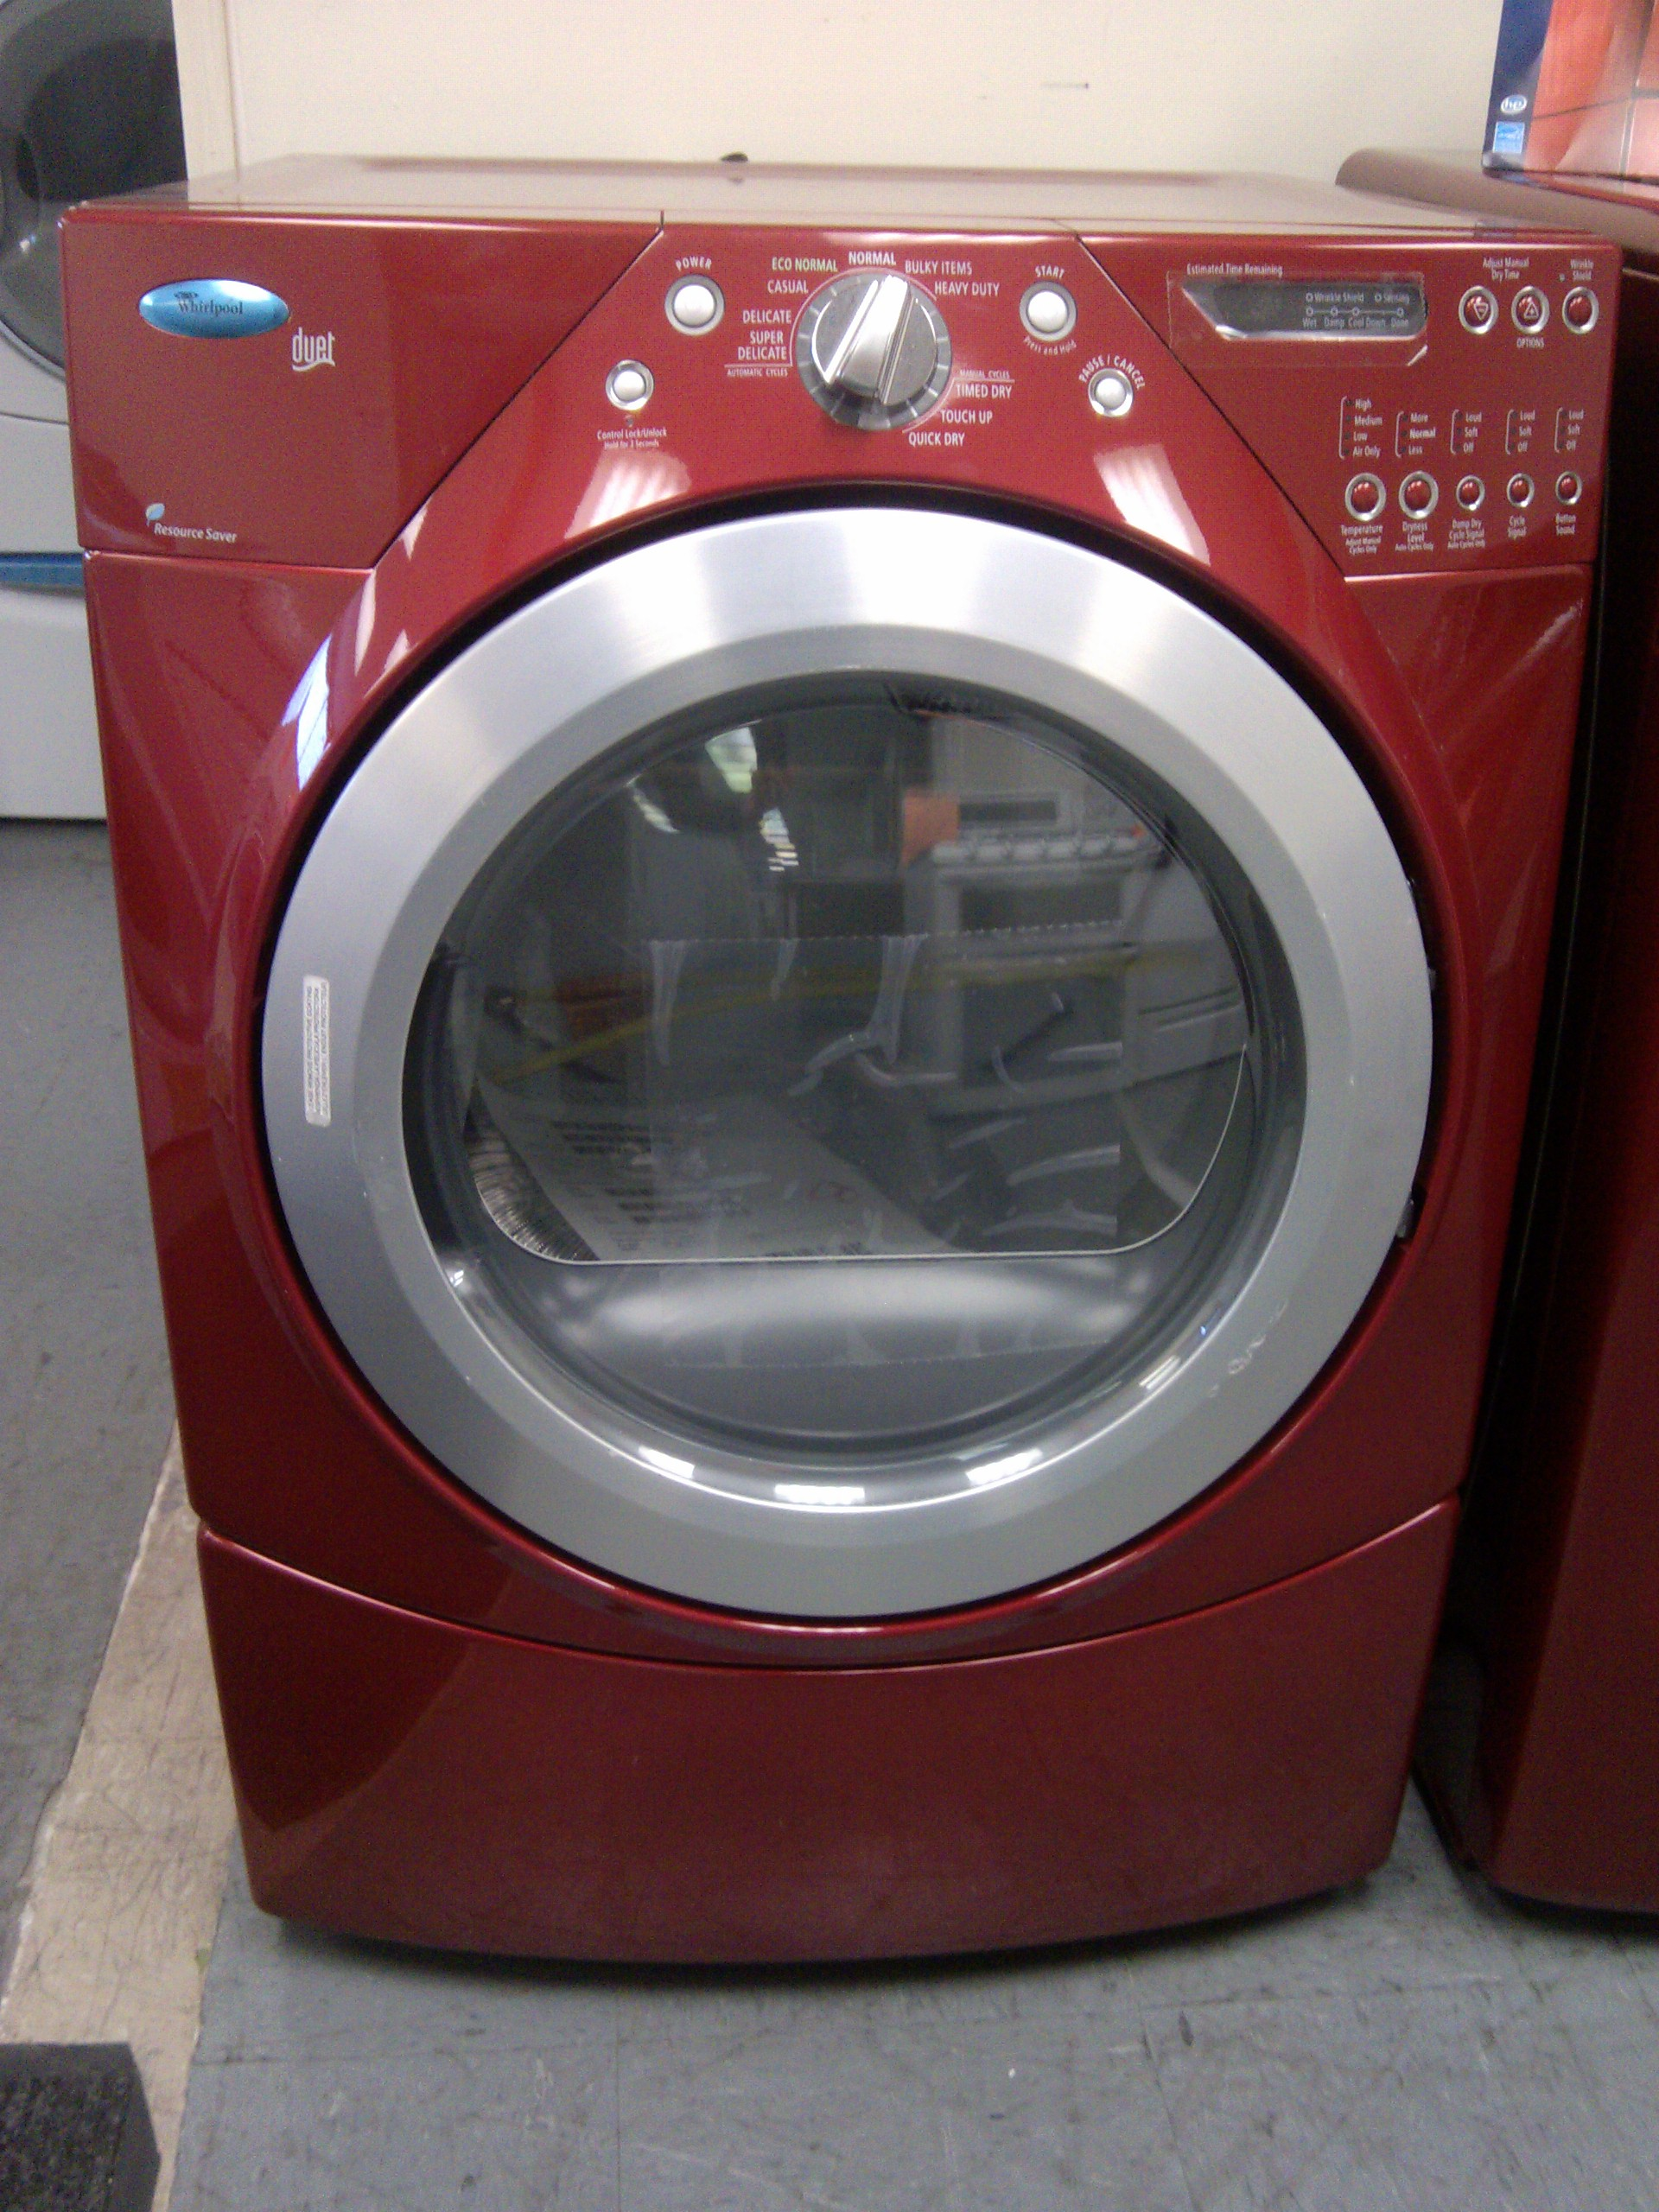 9 Whirlpool Duet Wgd9450wr Front Load Gas Dryer Red